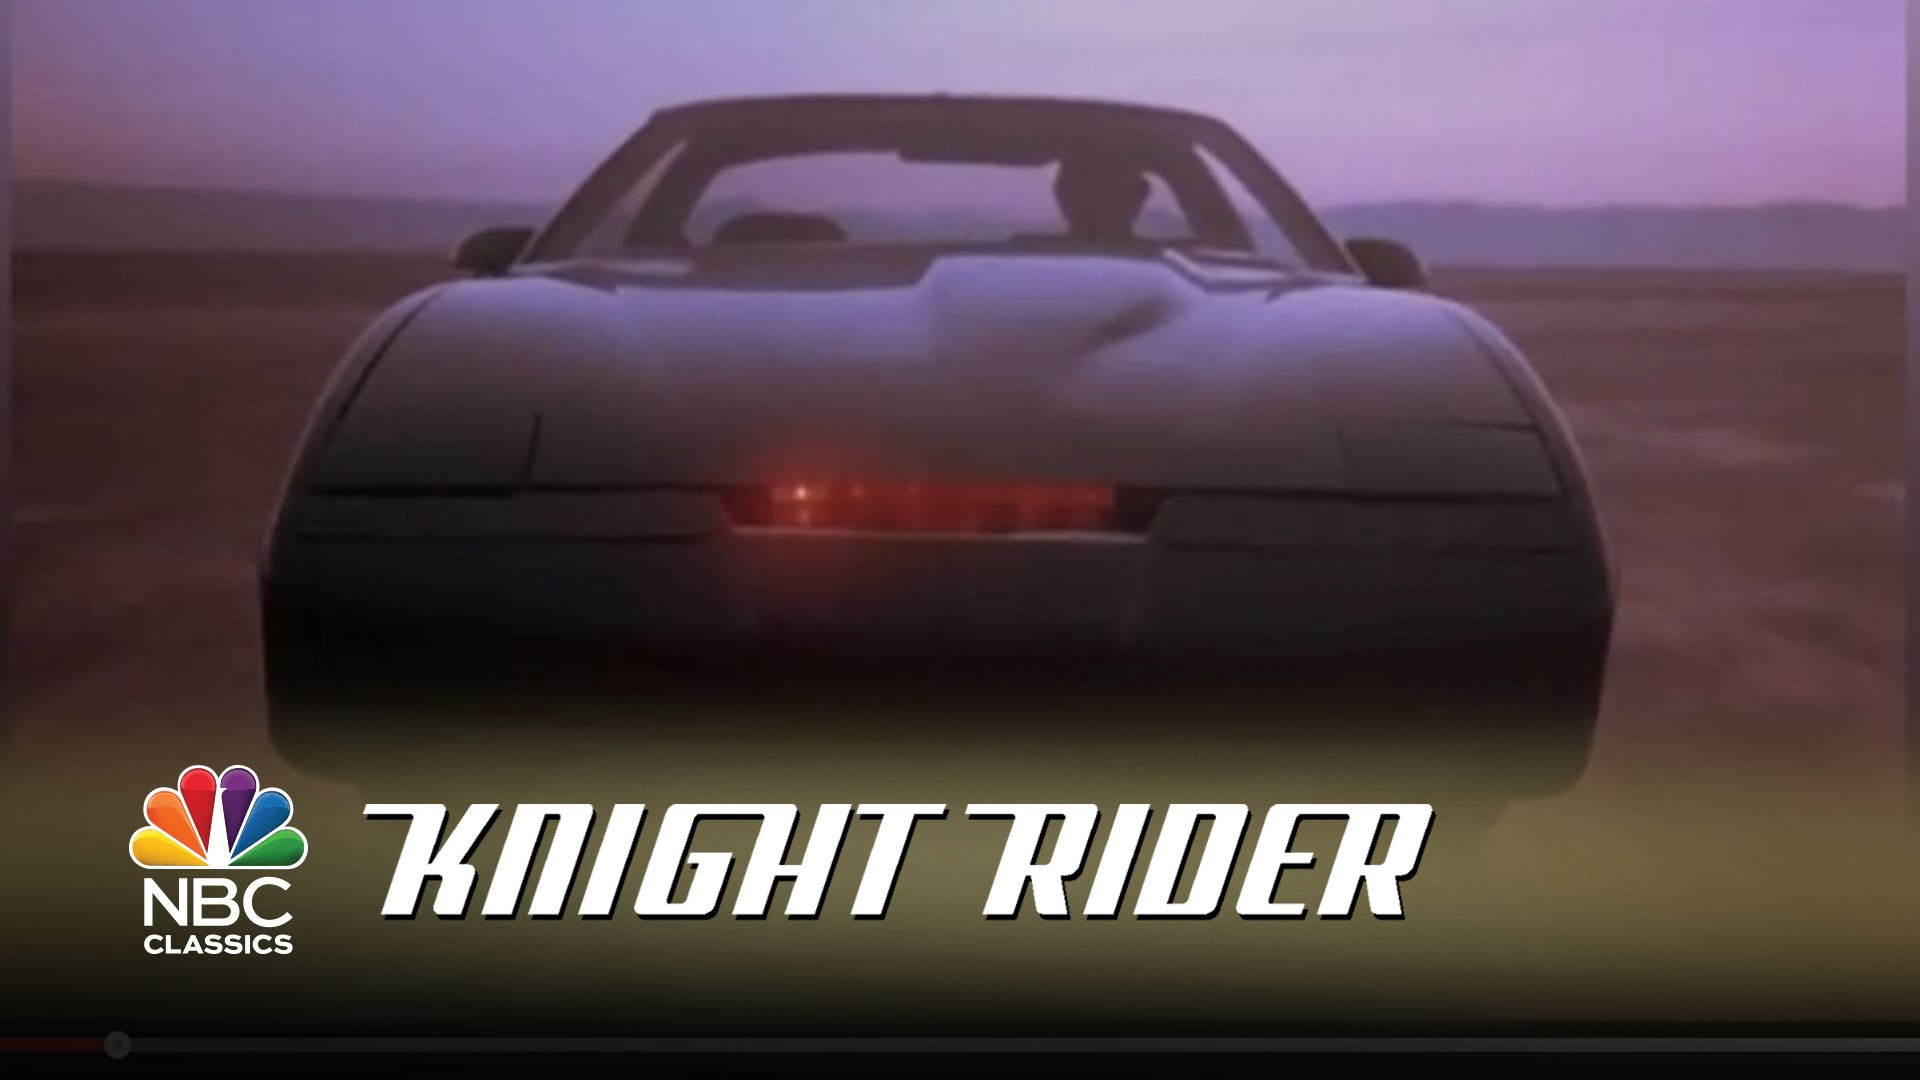 How Knight Rider Is Relevant Today  - DShorbAuthor - Medium